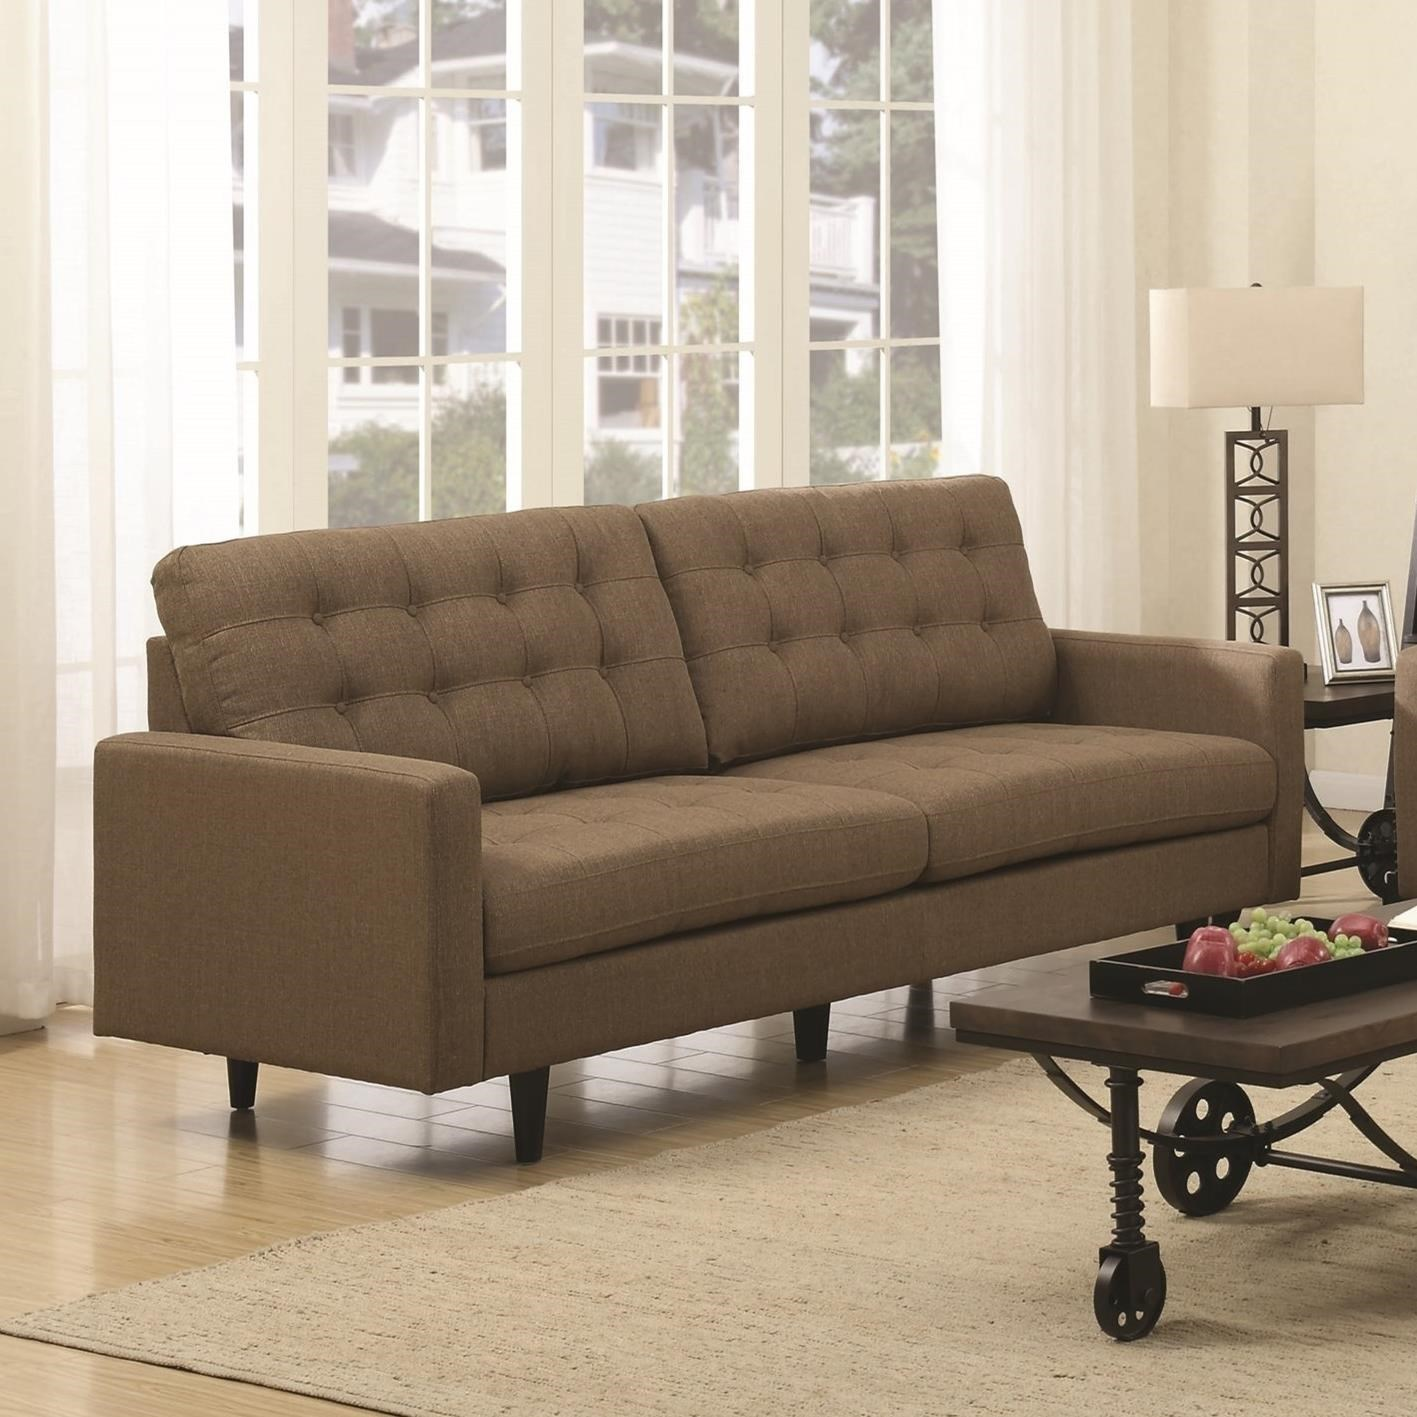 kesson mid century modern sofa quality furniture at affordable